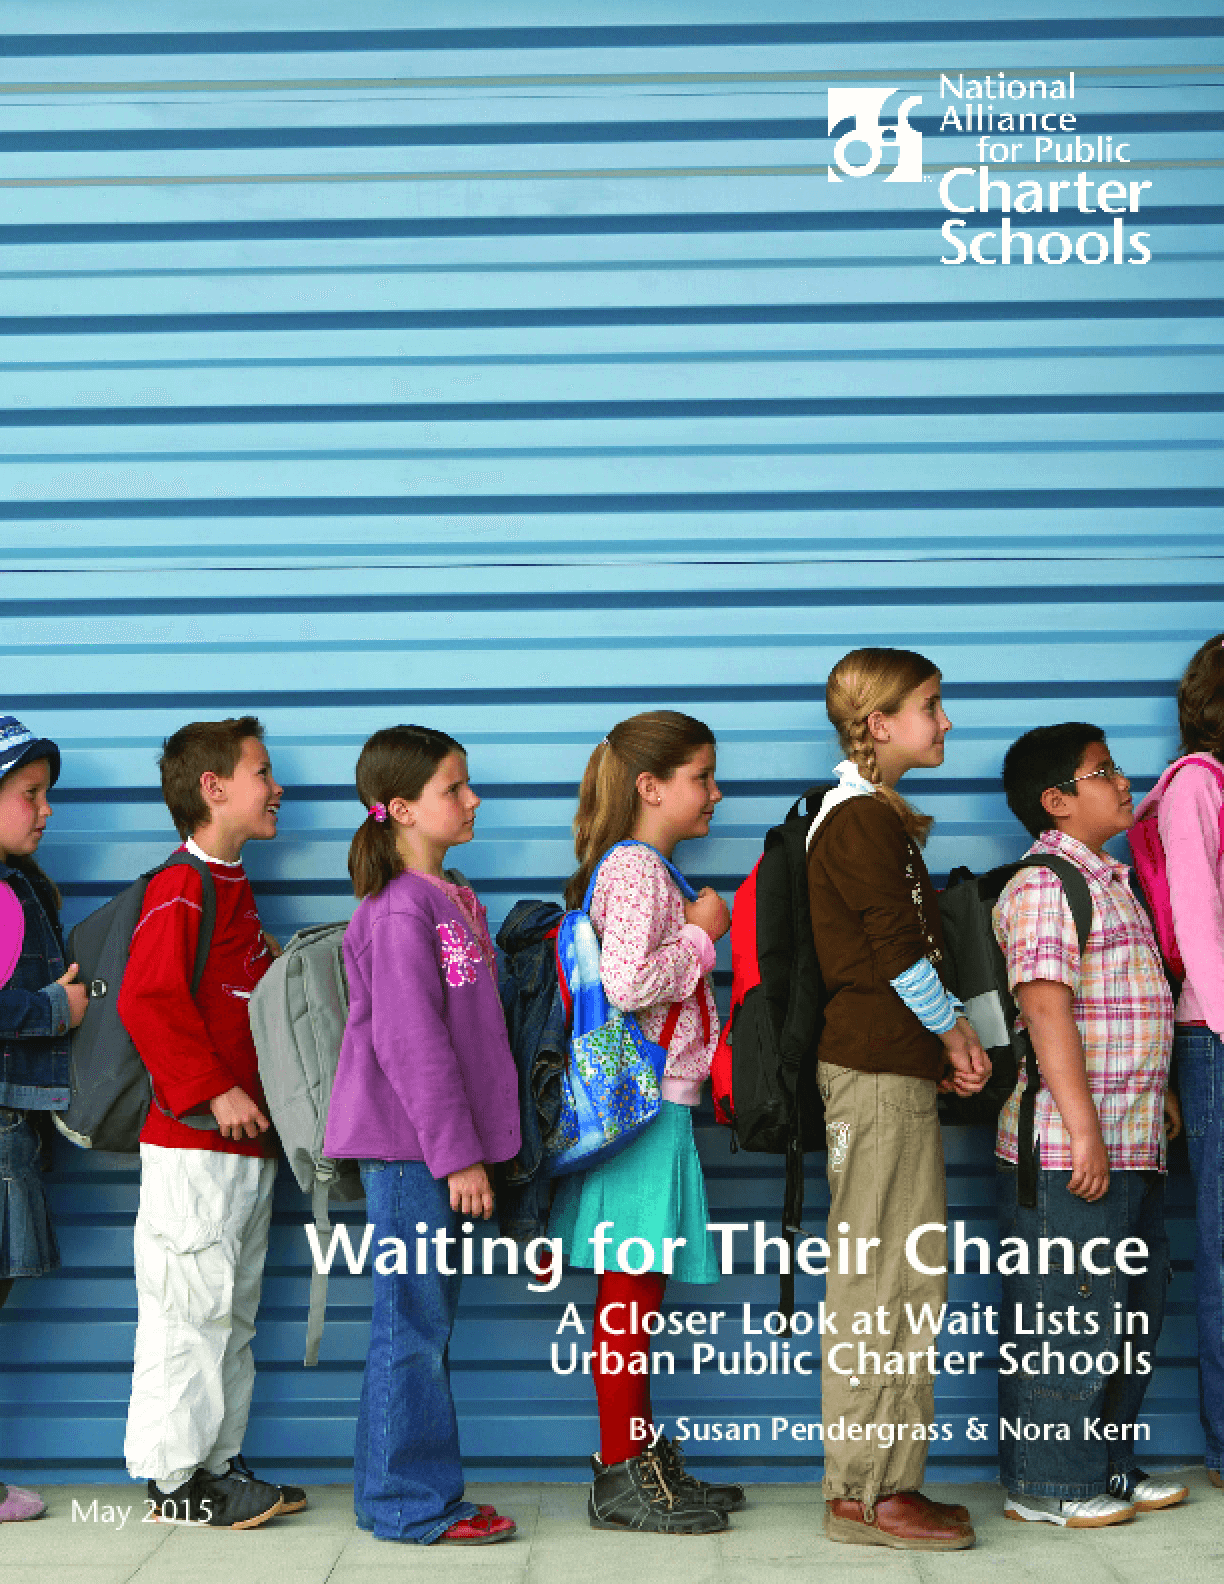 Waiting for Their Chance: A Closer Look at Wait Lists in Urban Public Charter Schools